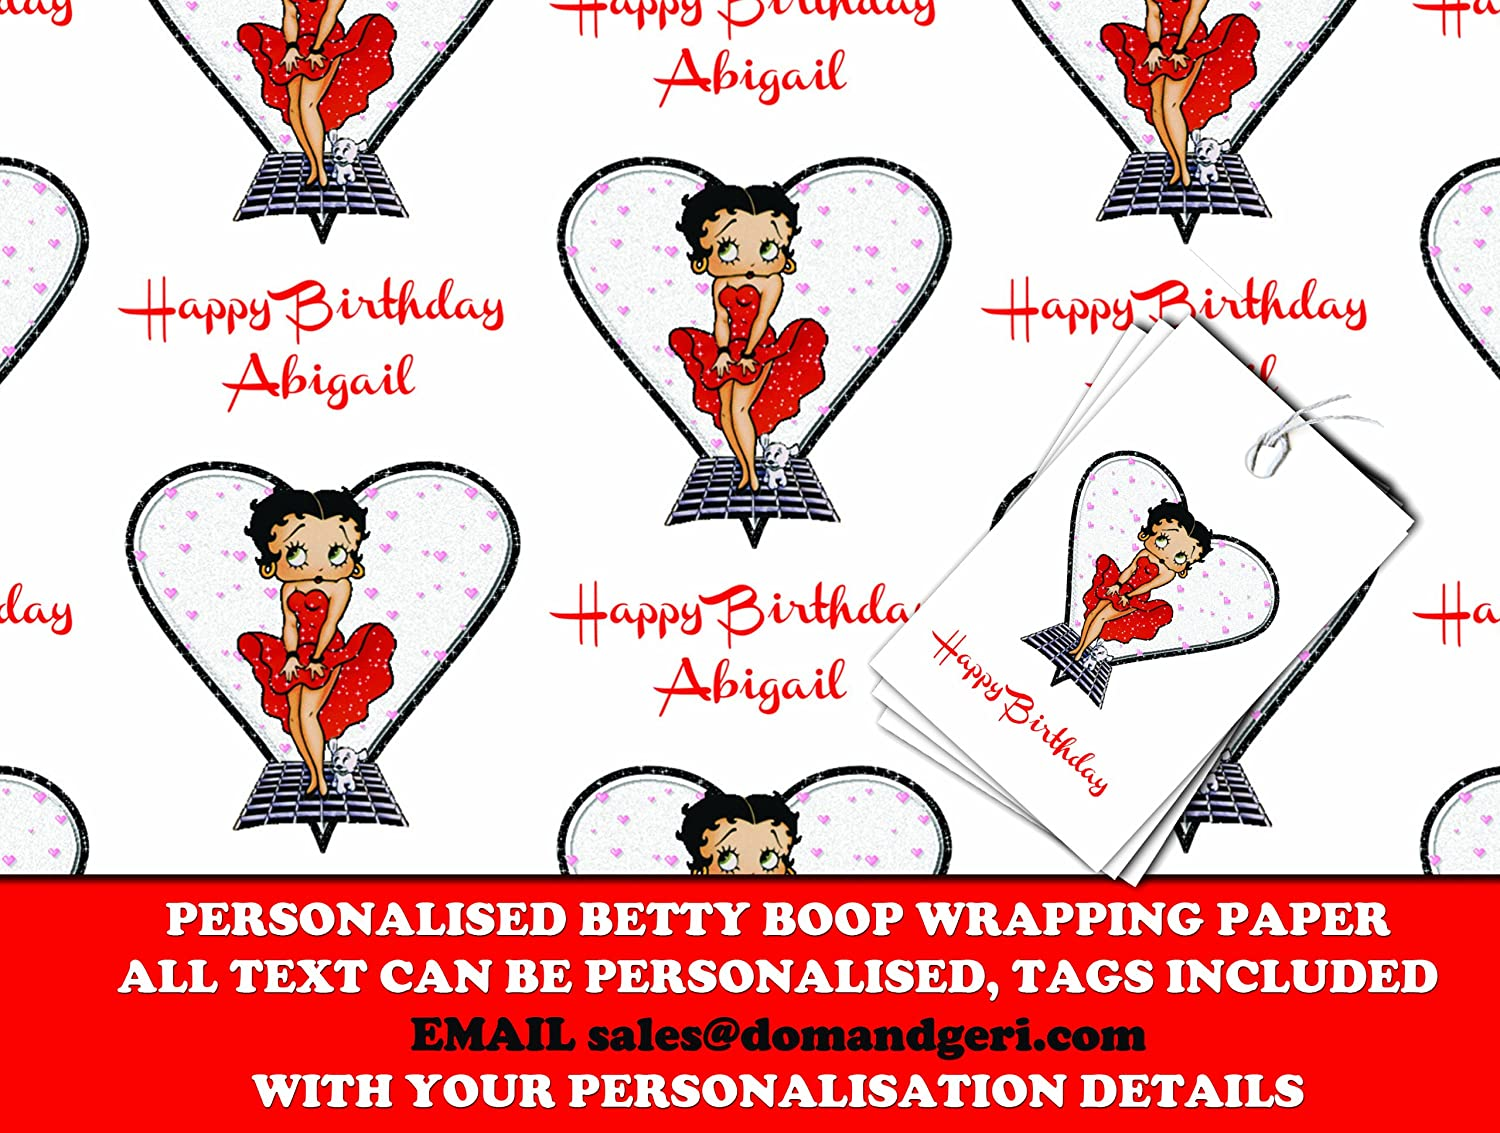 Amazon.com: Personalized Wrapping Paper Betty Boop - 590mm x 840mm ...